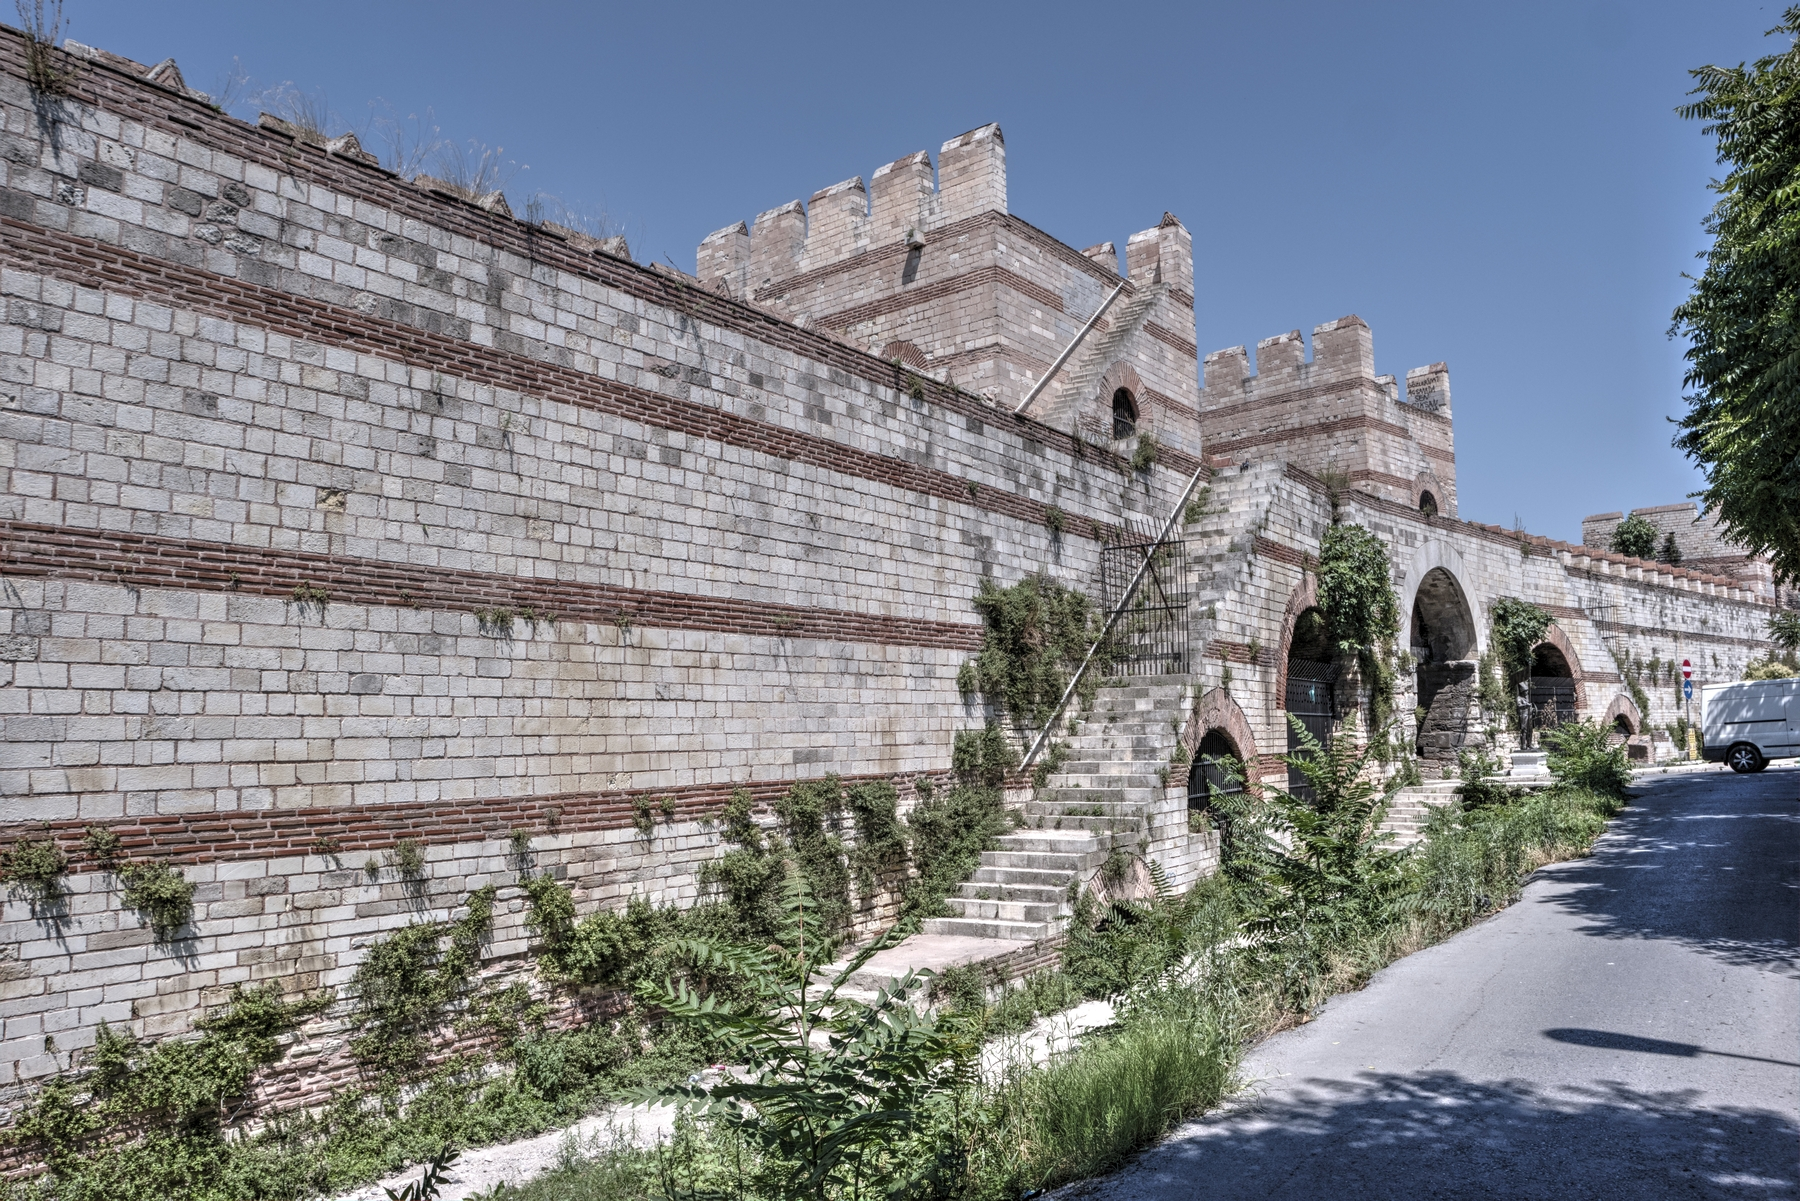 Theodosian Walls of Constantinople